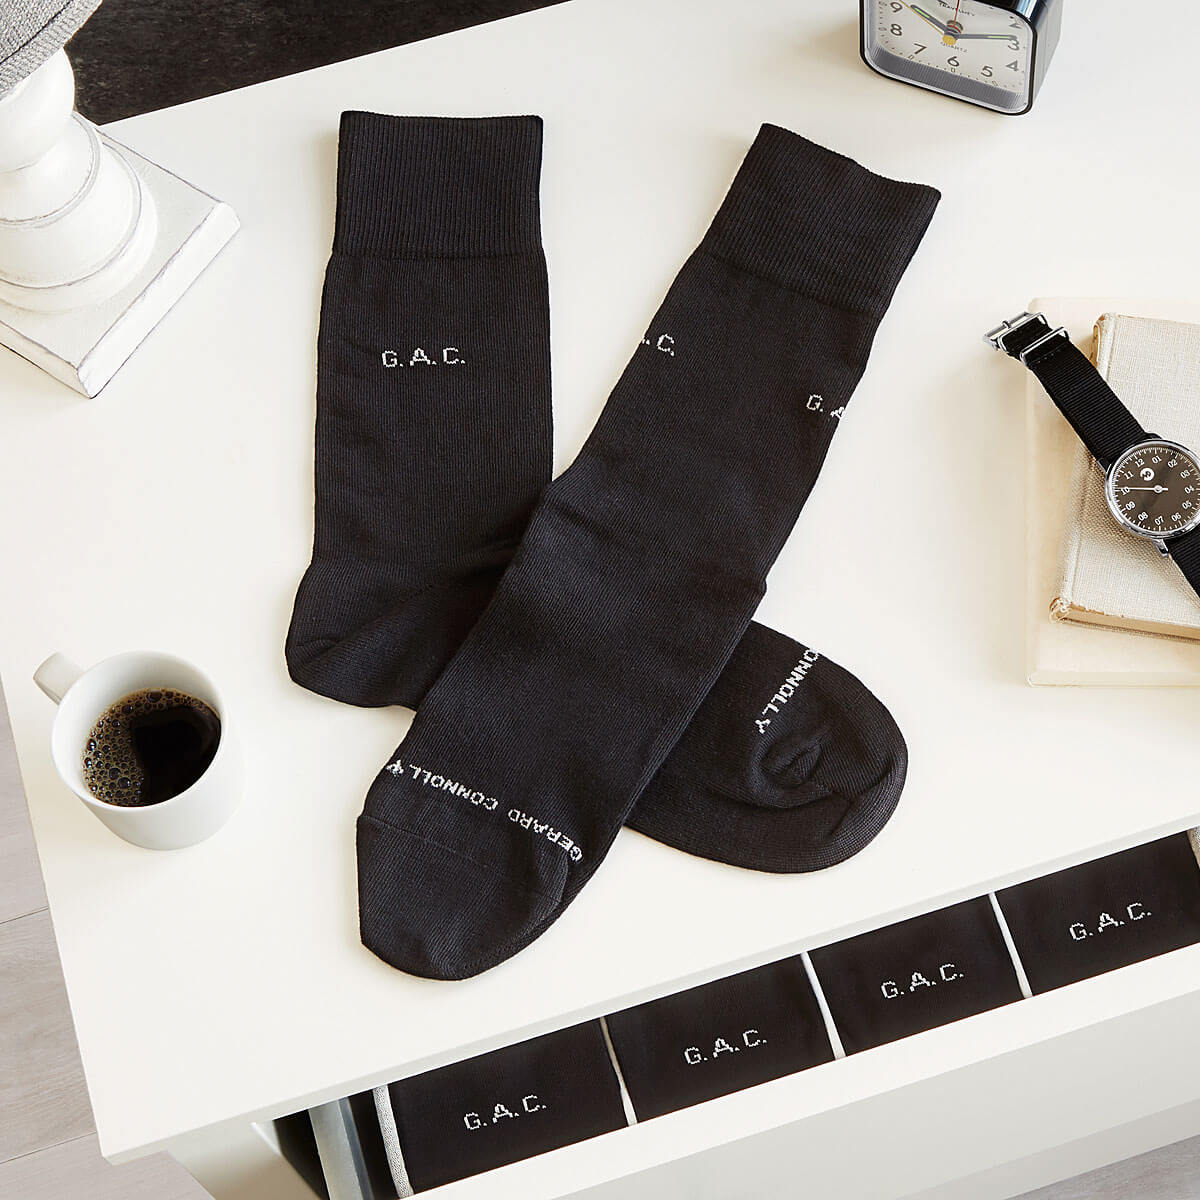 Personalized Socks - Set of 5 Pairs | UncommonGoods